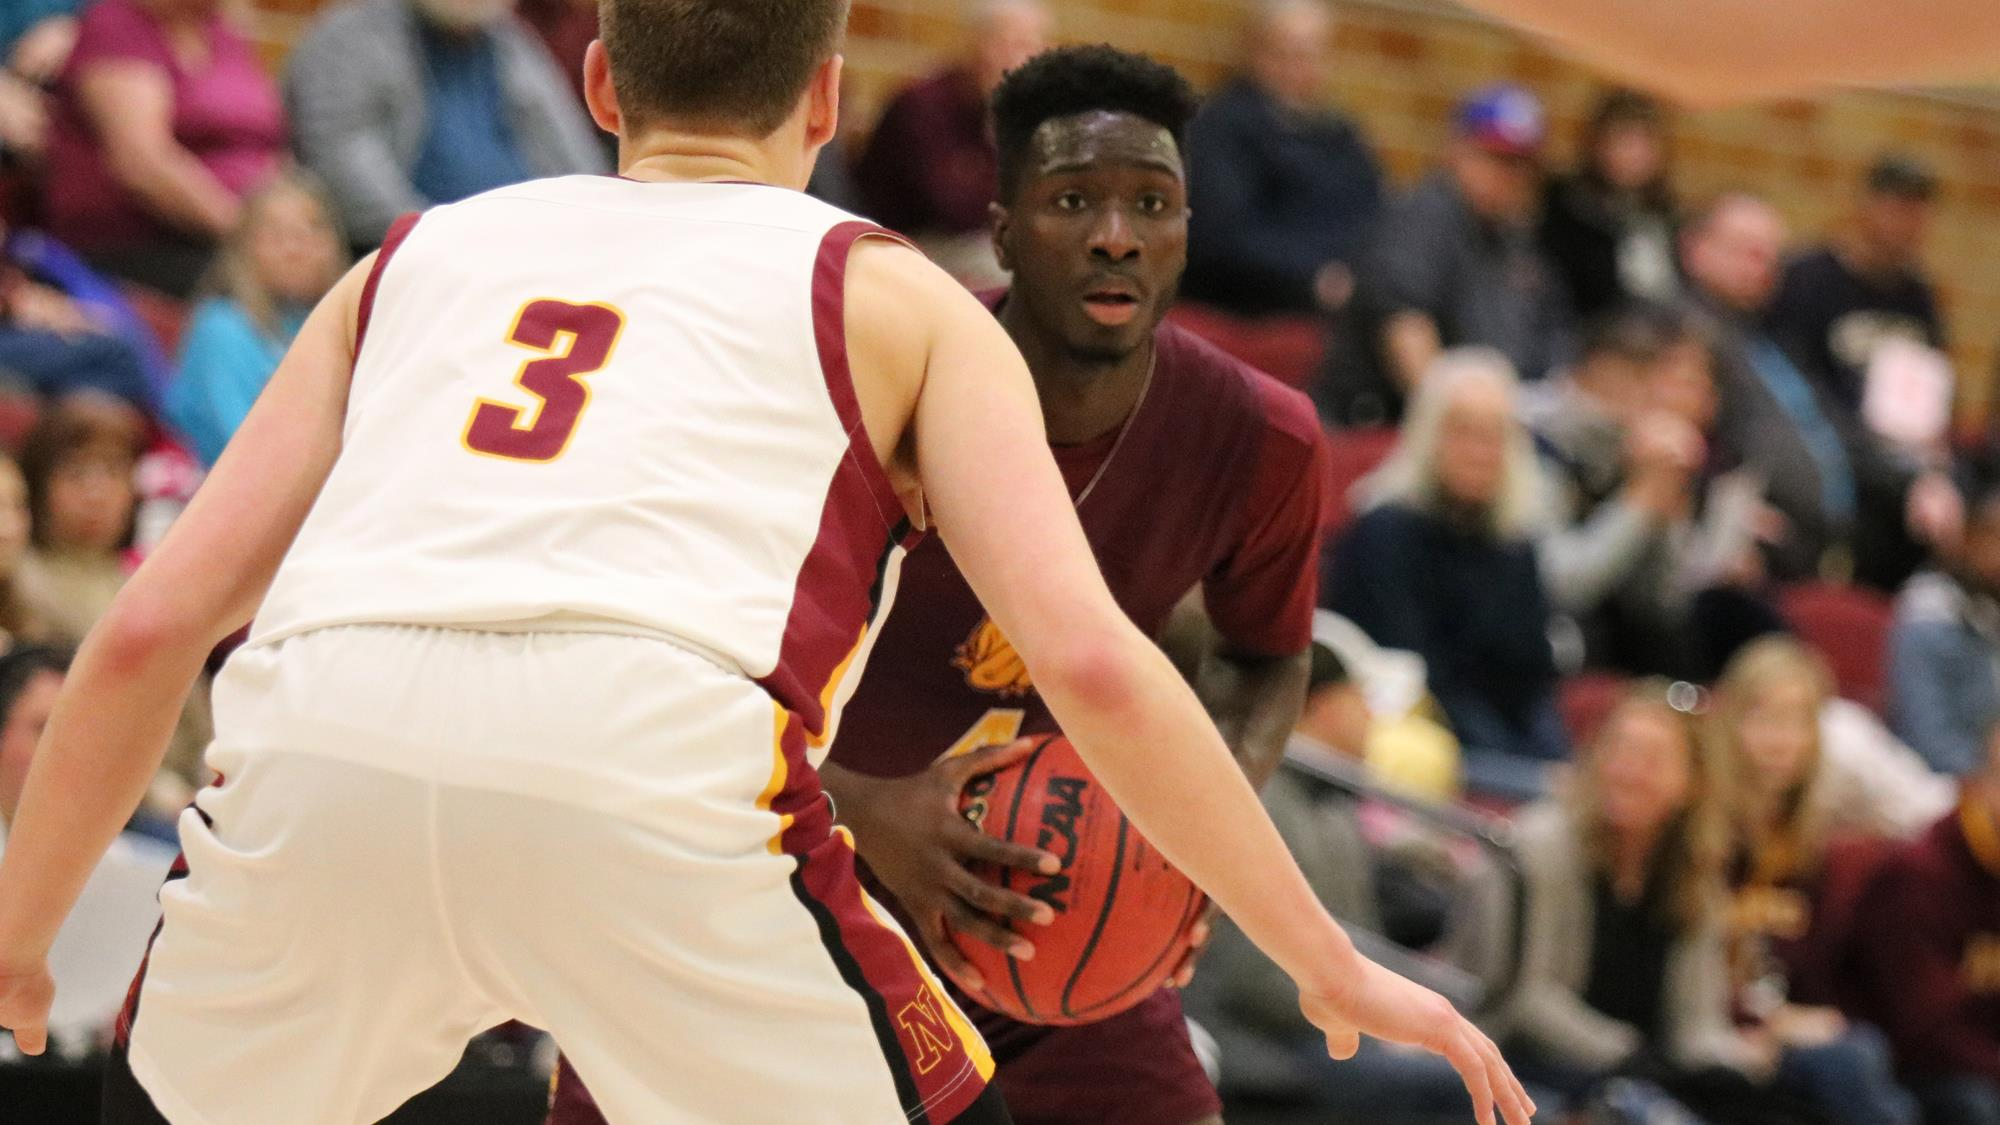 Senior Mamadou Ngom defends against a team member from Northern States. Photo by Drew Smith, courtesy of UMD Athletics